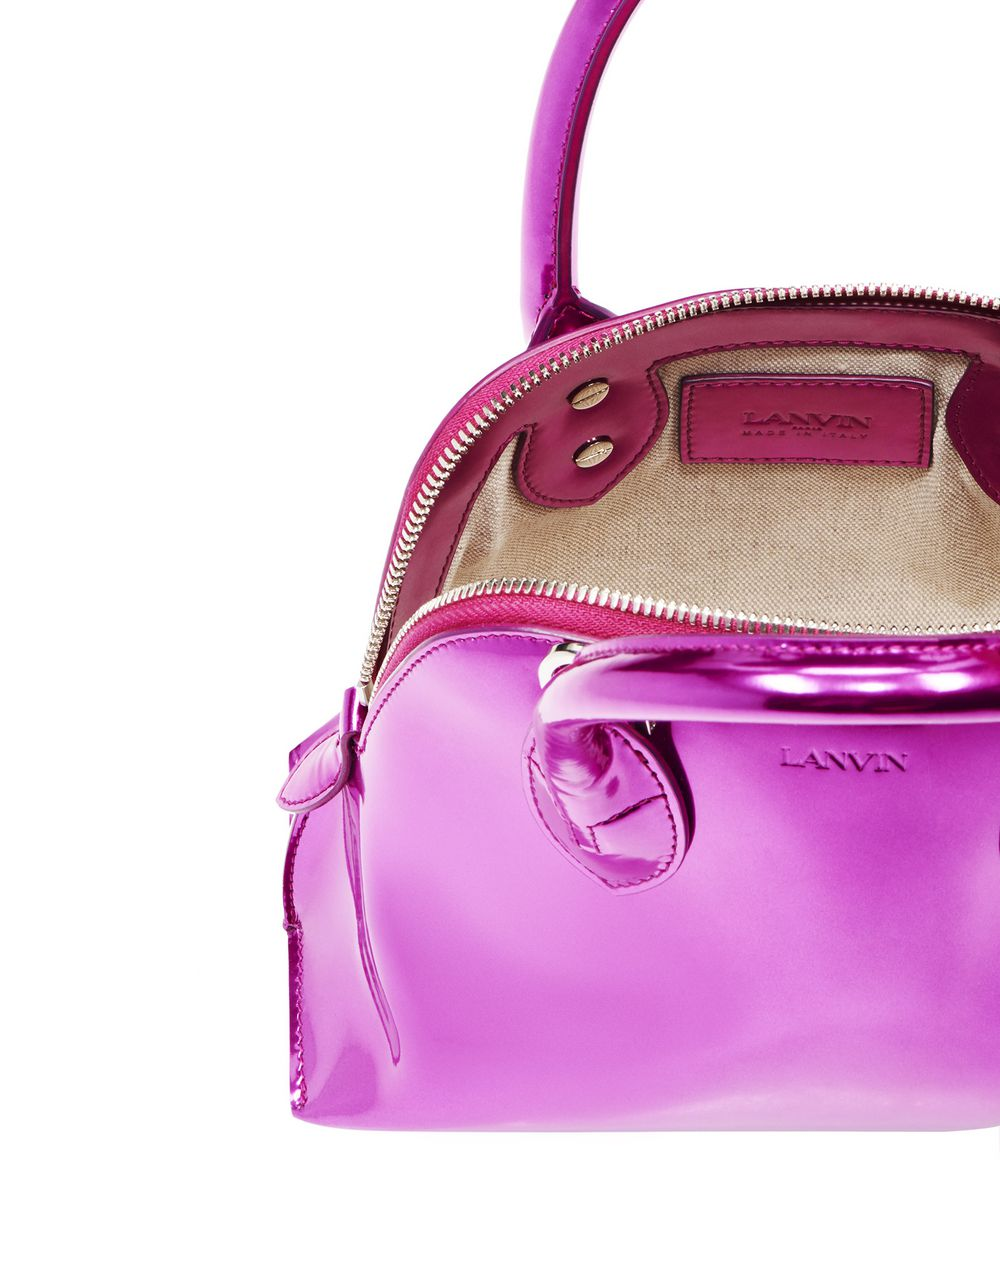 MAGOT METALLIC BAG MINI - Lanvin